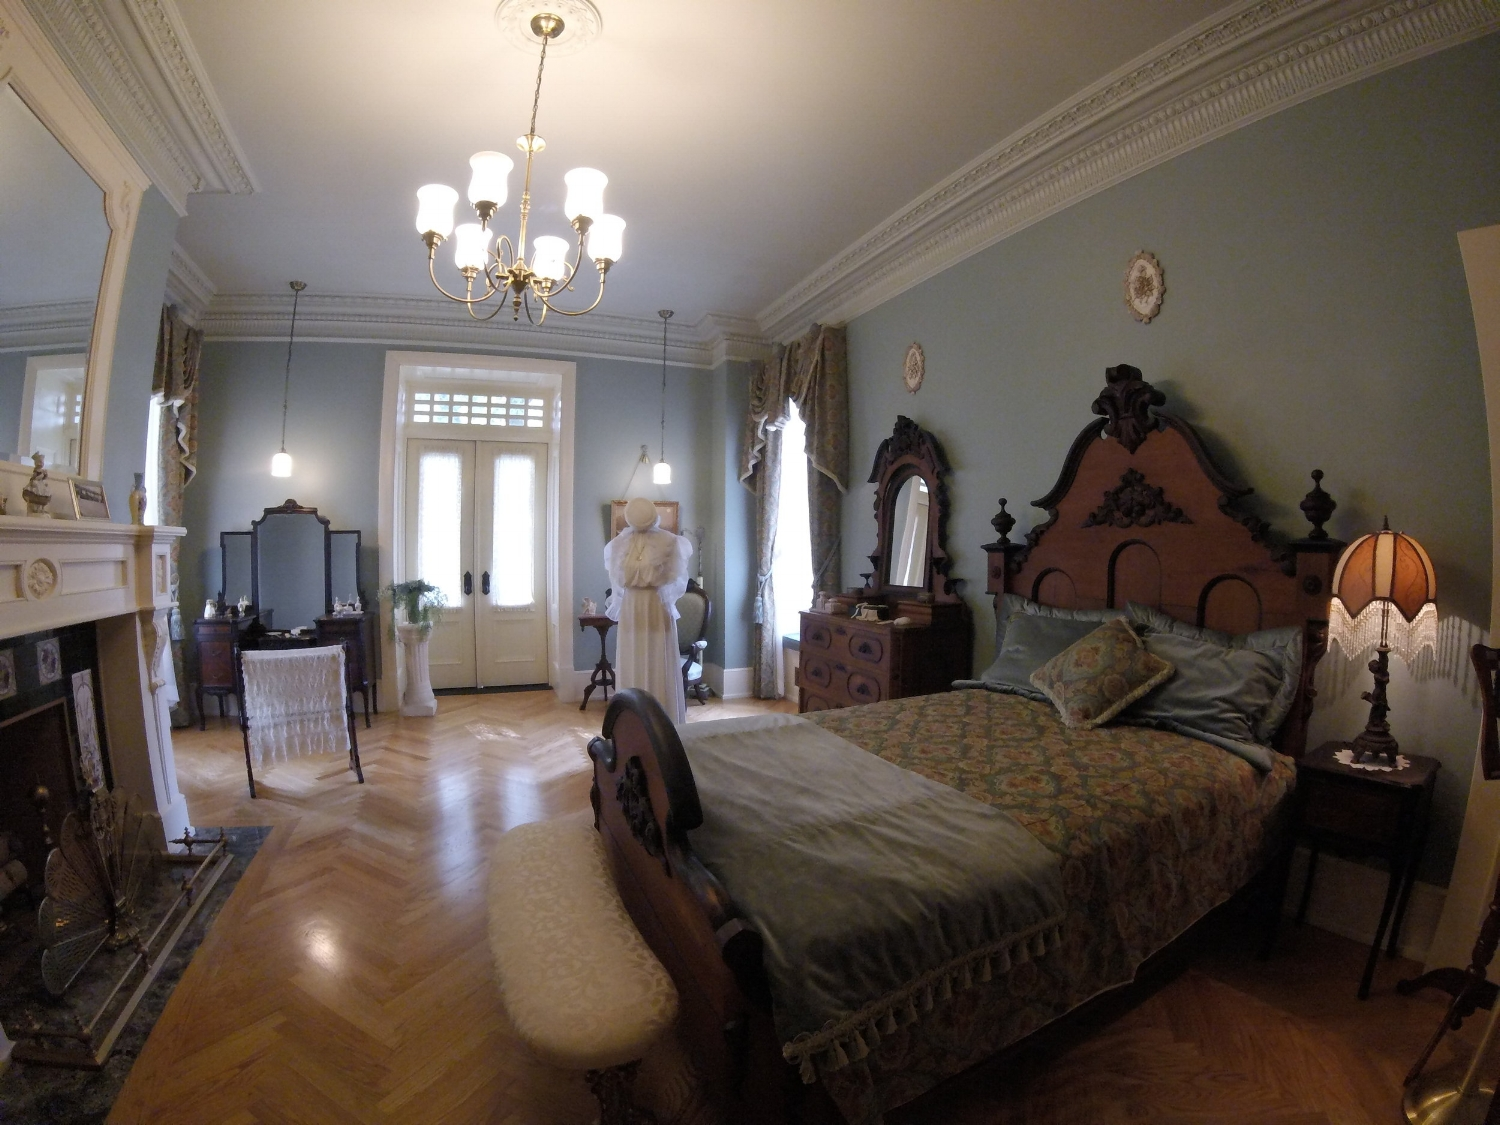 One of the many bedrooms in Boldt Castle